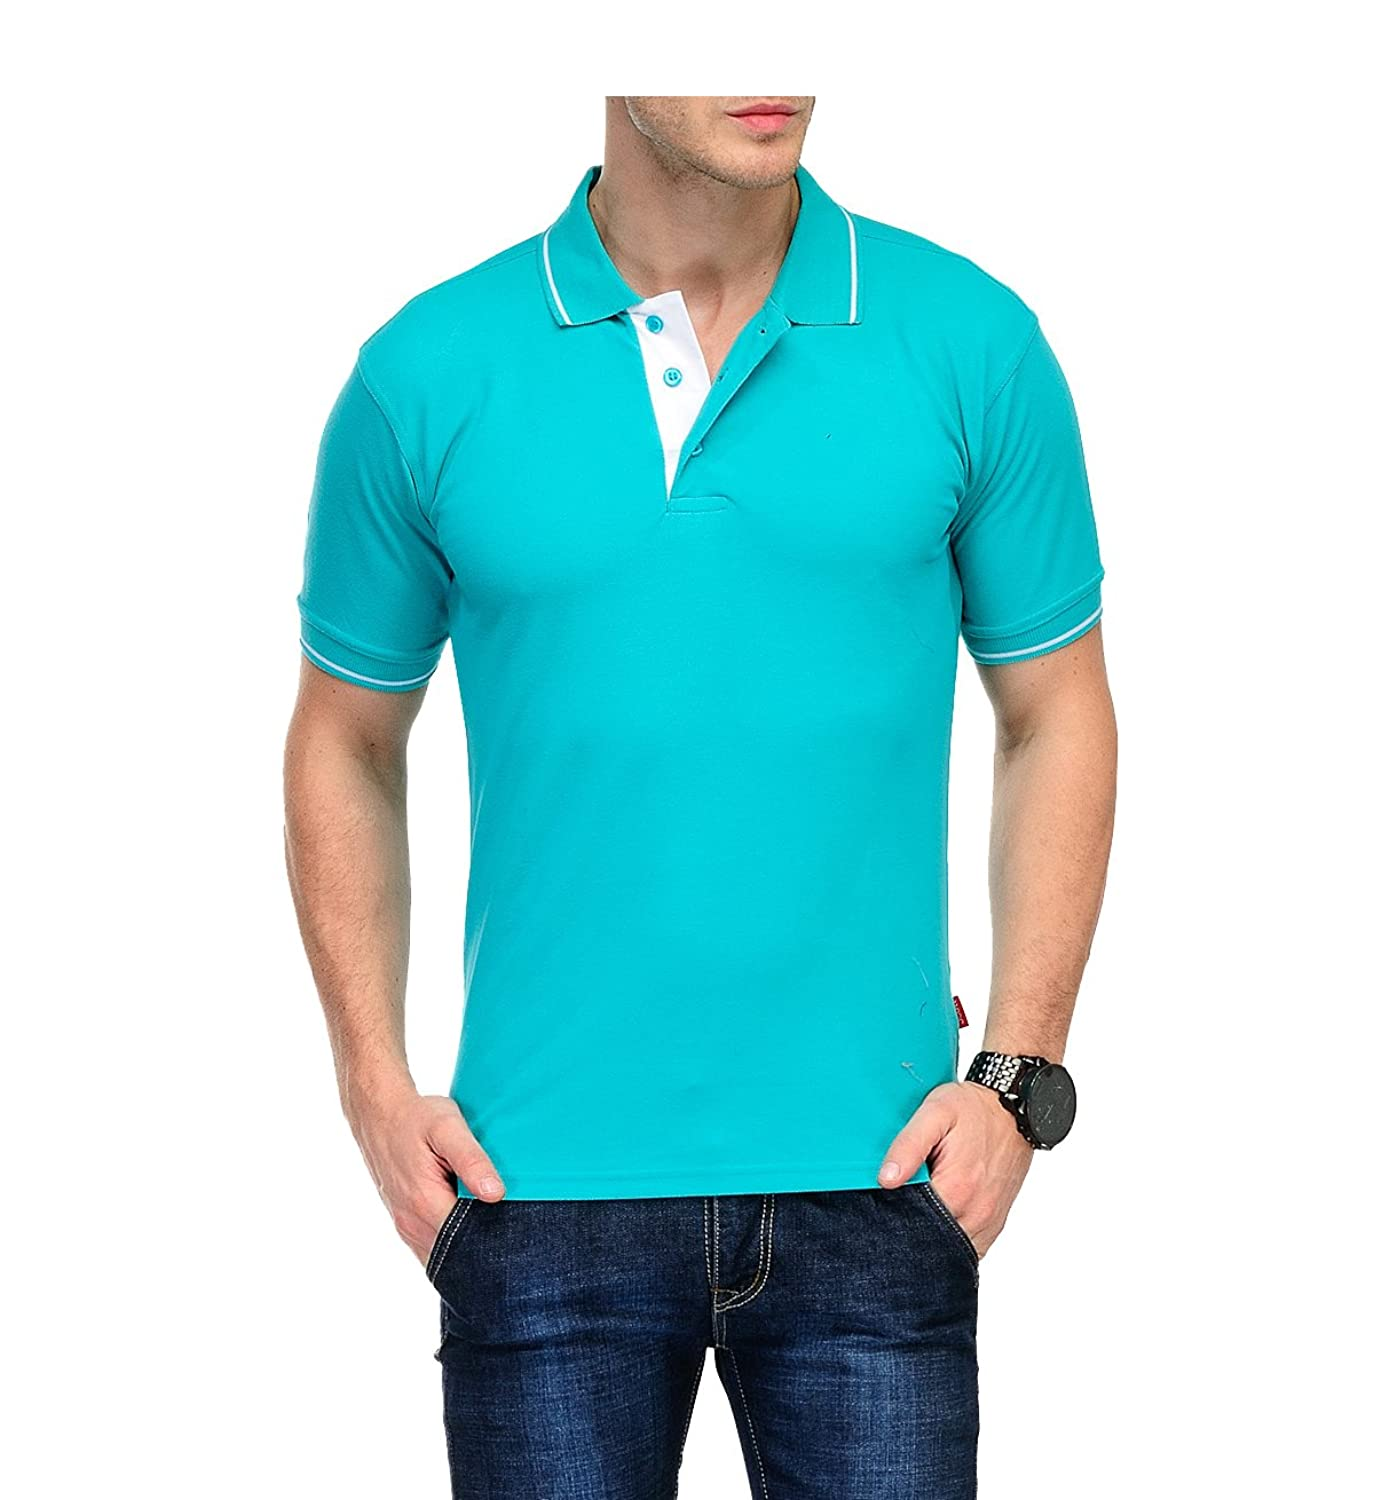 Design your own t shirt india cash on delivery - Scott Men S Premium Cotton Polo T Shirt Electric Green